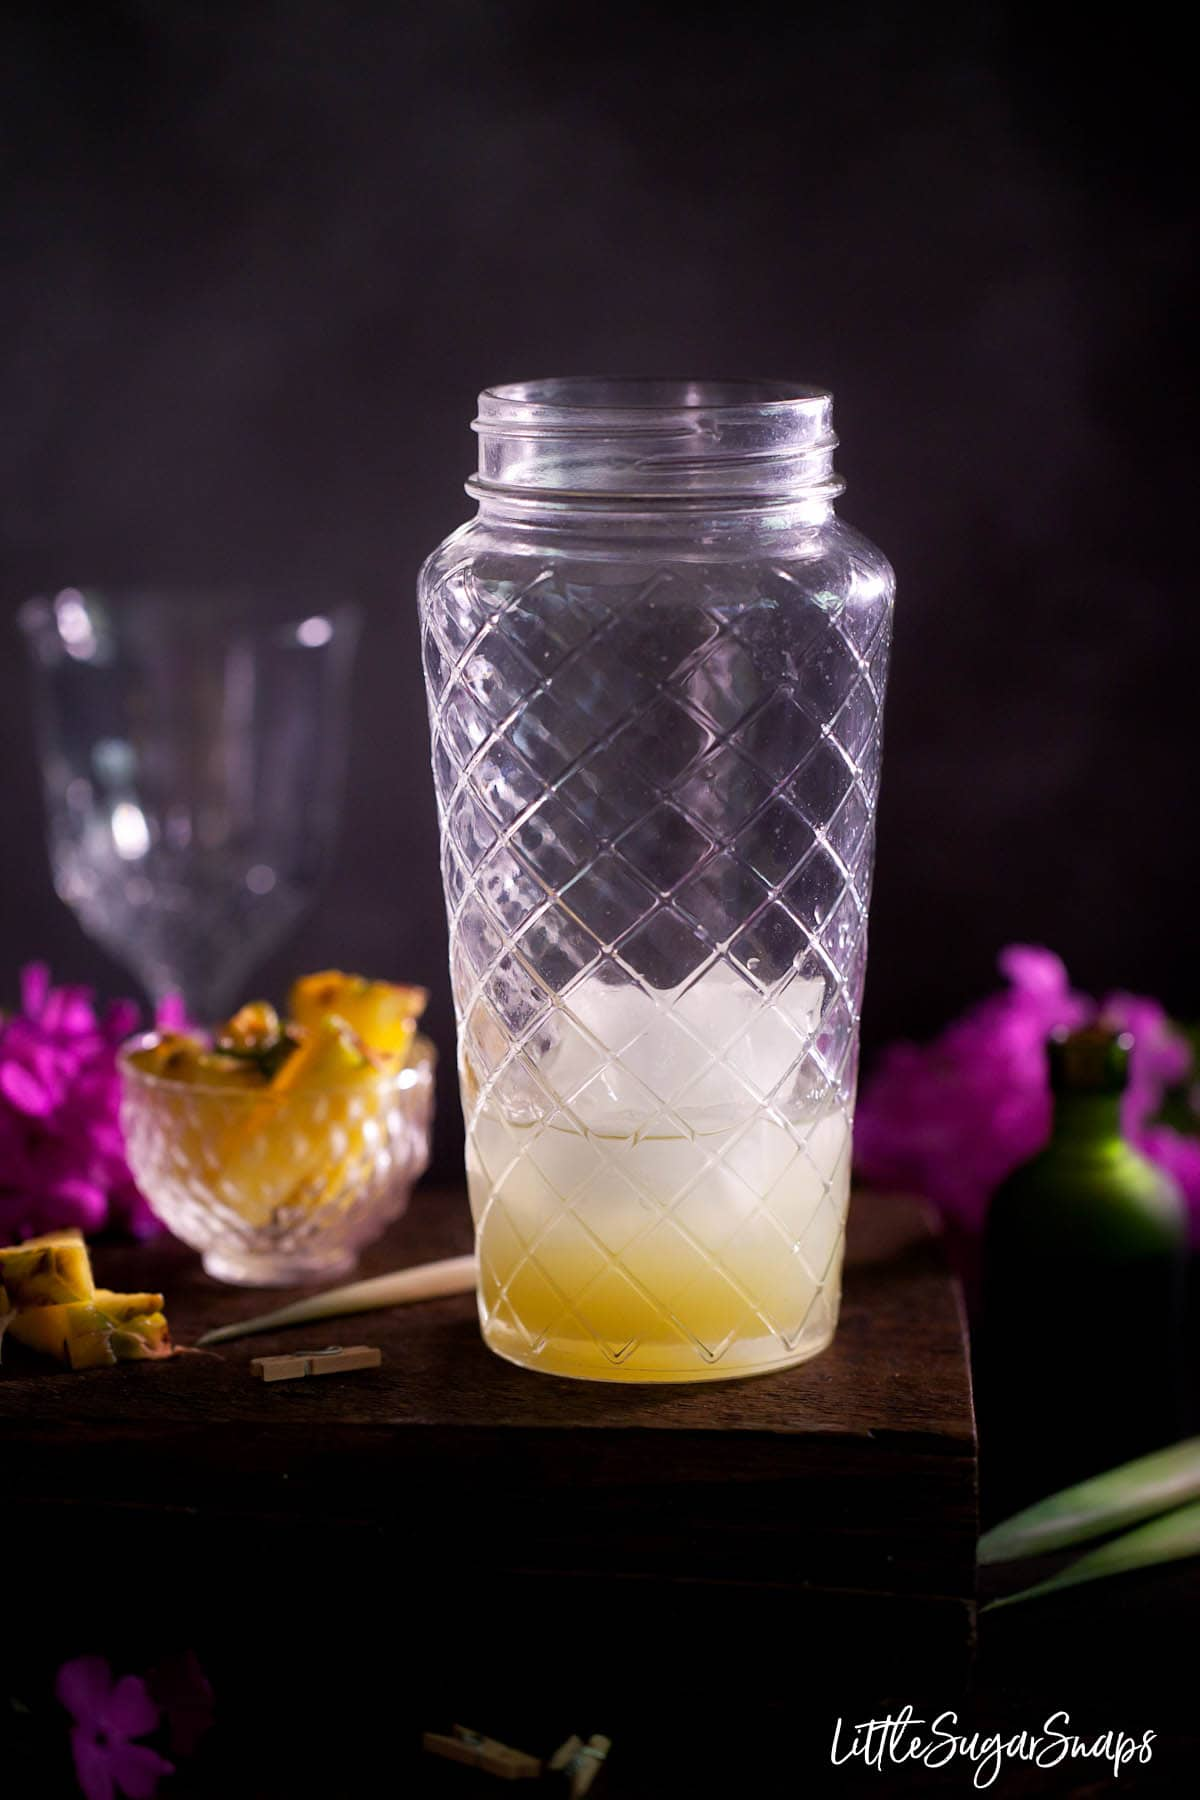 Ingredients for a Royal Hawaiian in a cocktail shaker: ice, gin and pineapple juice